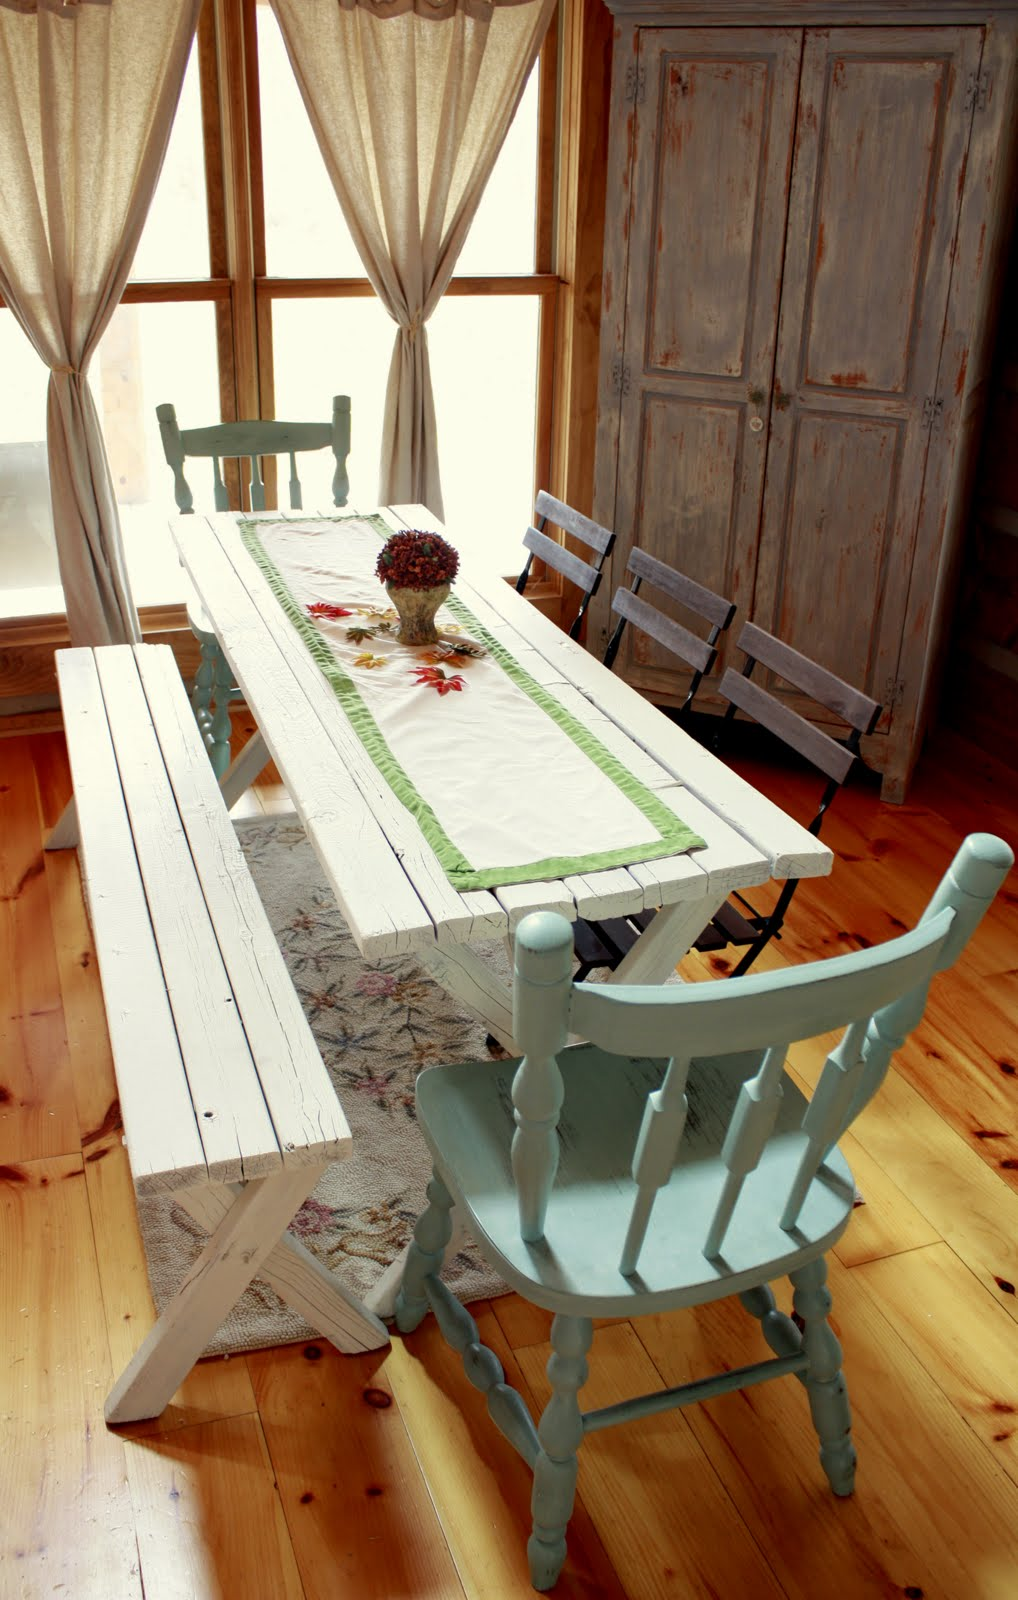 The Tabletop Decorations Were Kept Ultra Simple With A Linen Table